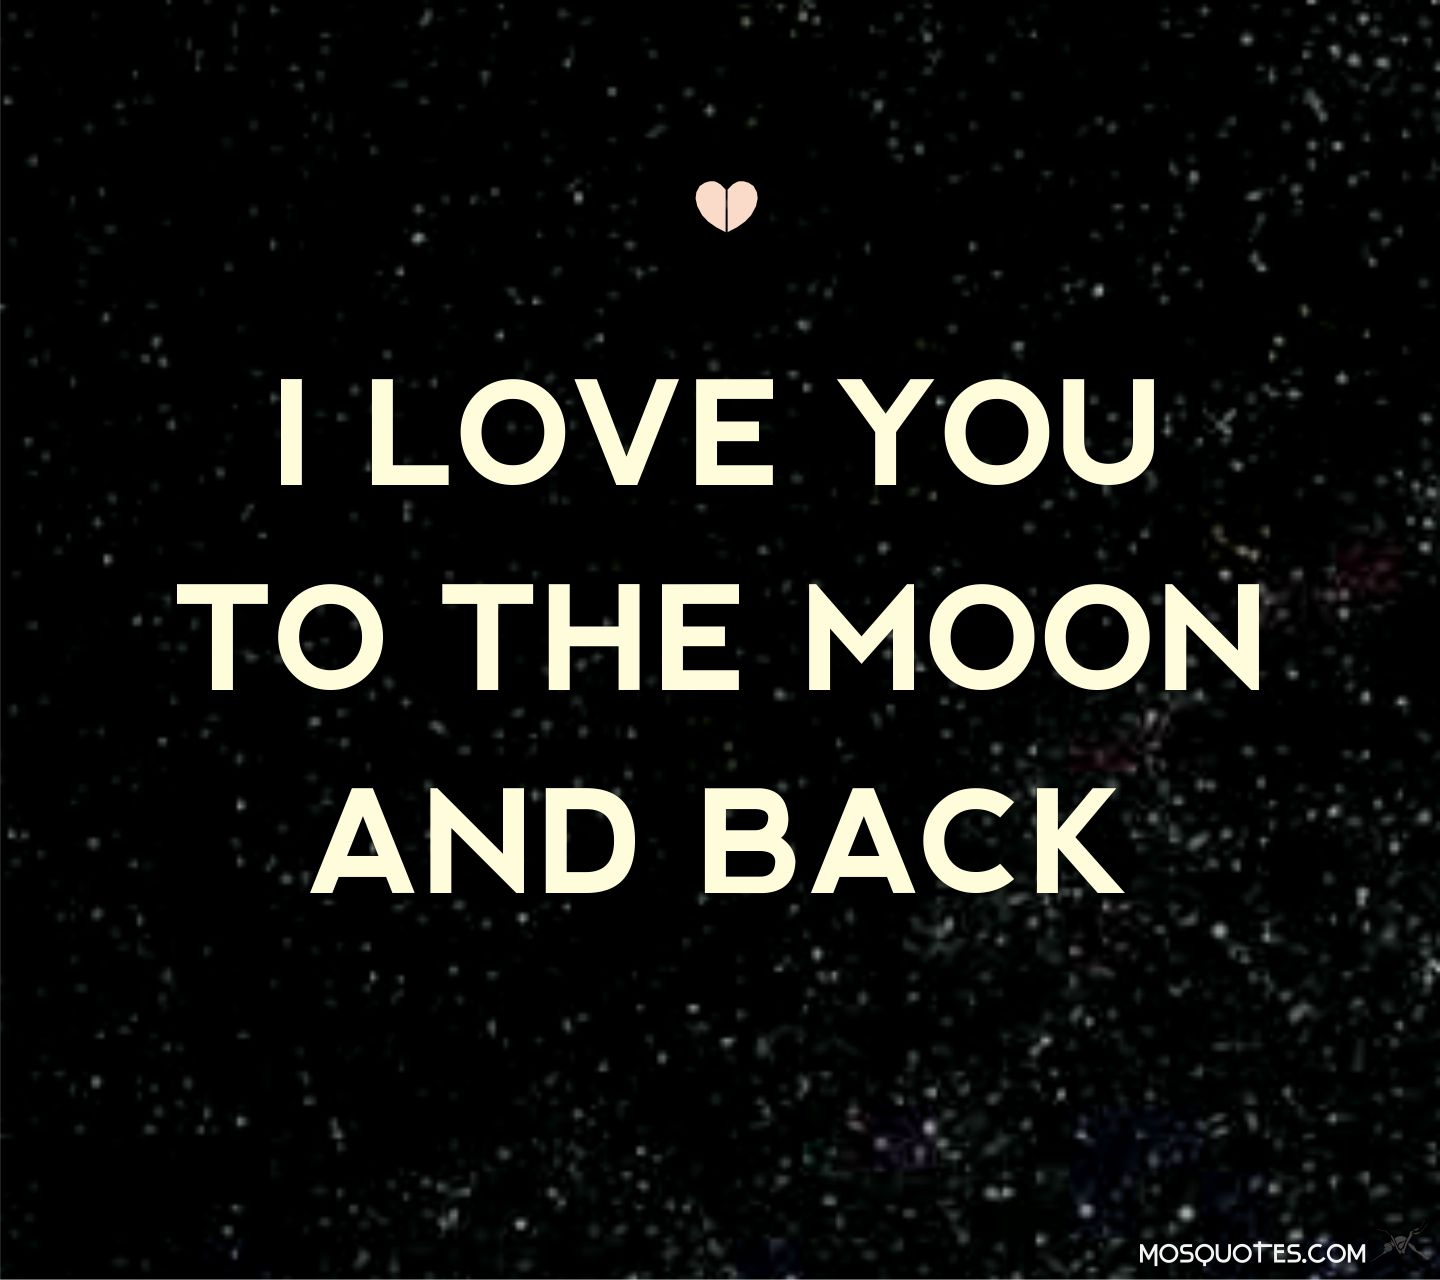 Take You To The Moon And Back Quotes Quotesgram